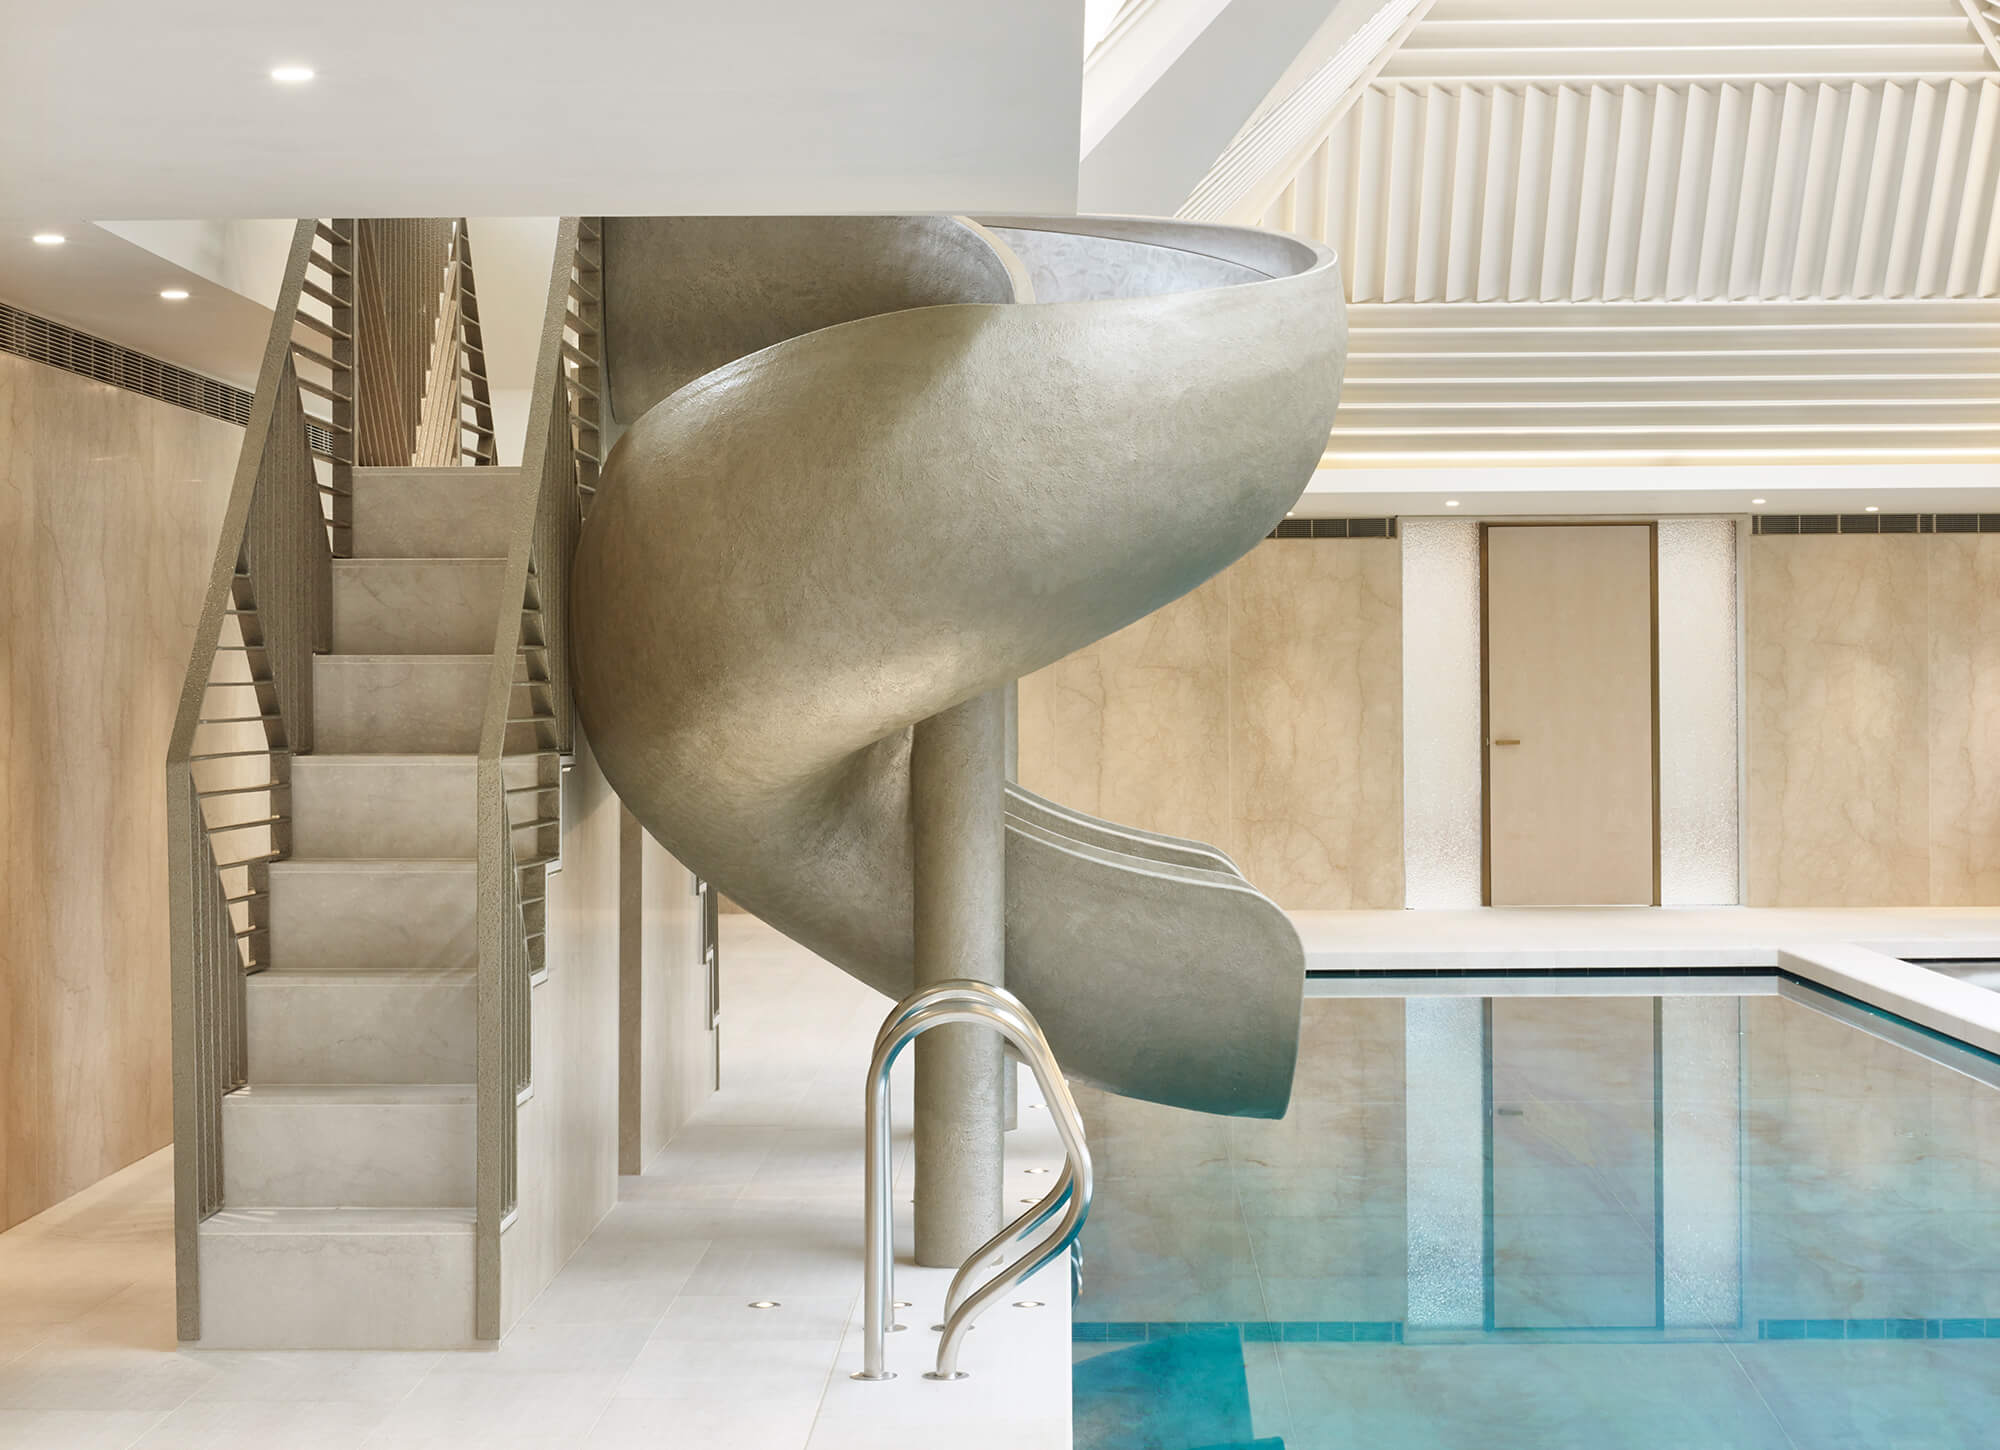 Luxury gold swimming pool slide with steps beside an indoor pool.